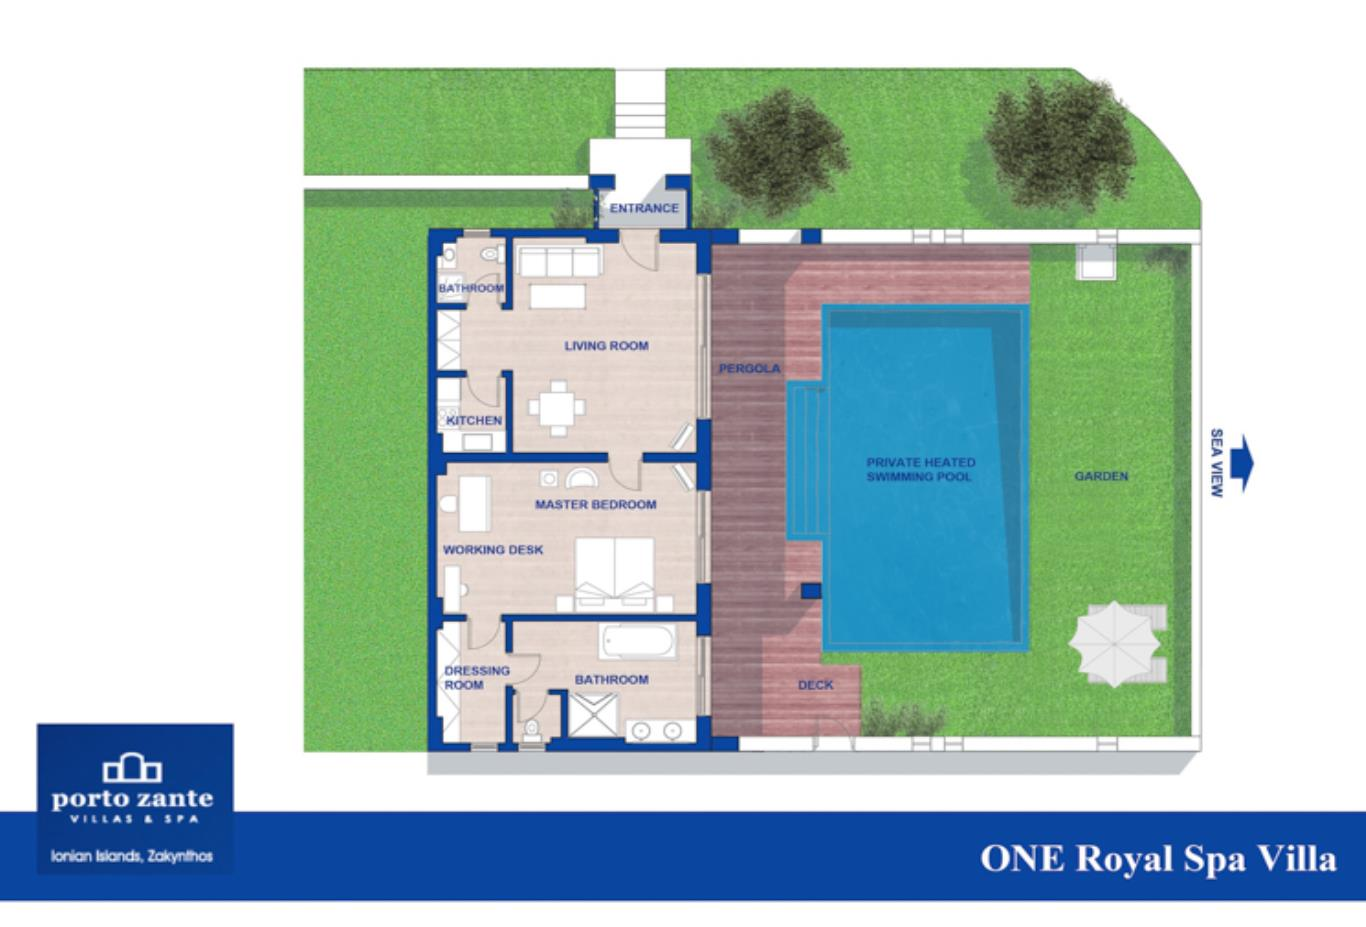 One Royal Spa Villa floorplan